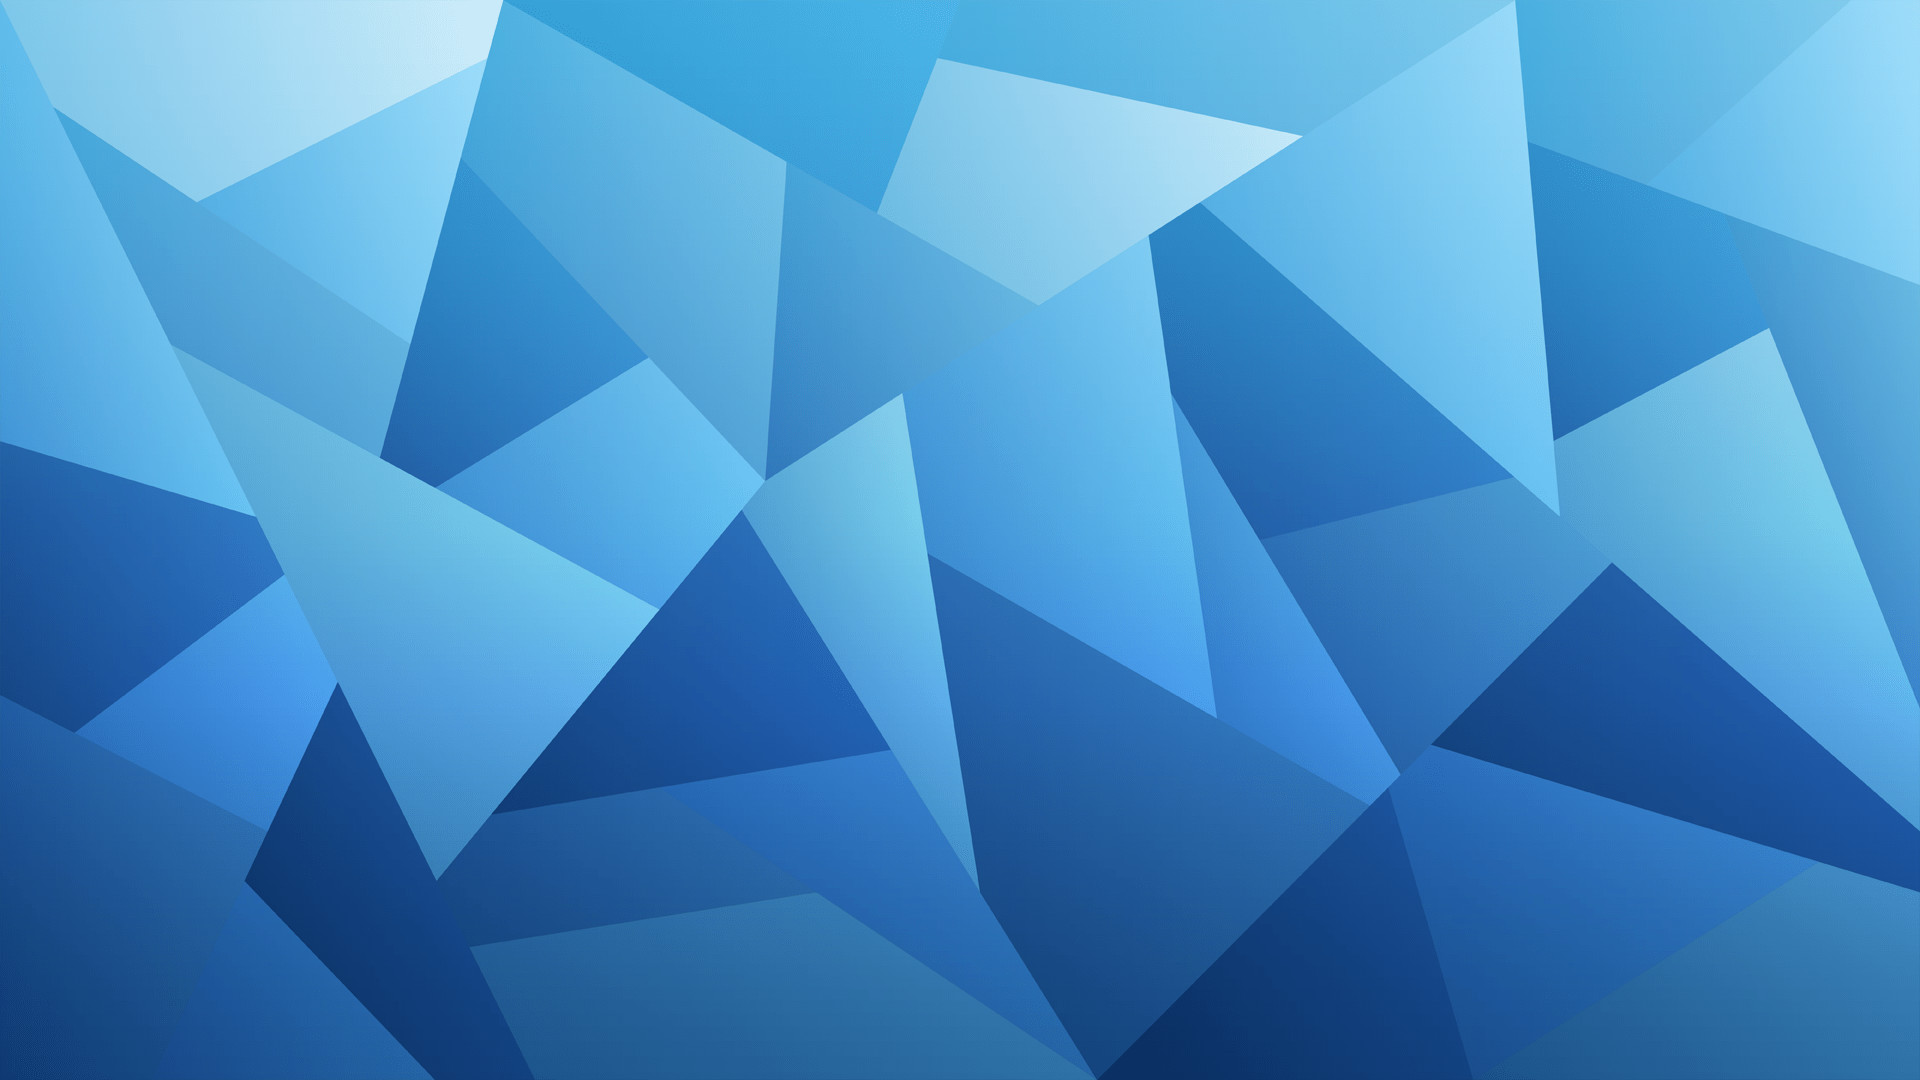 … abstract geometric wallpapers – Geometric Triangle Desktop Wallpaper  24836. Download